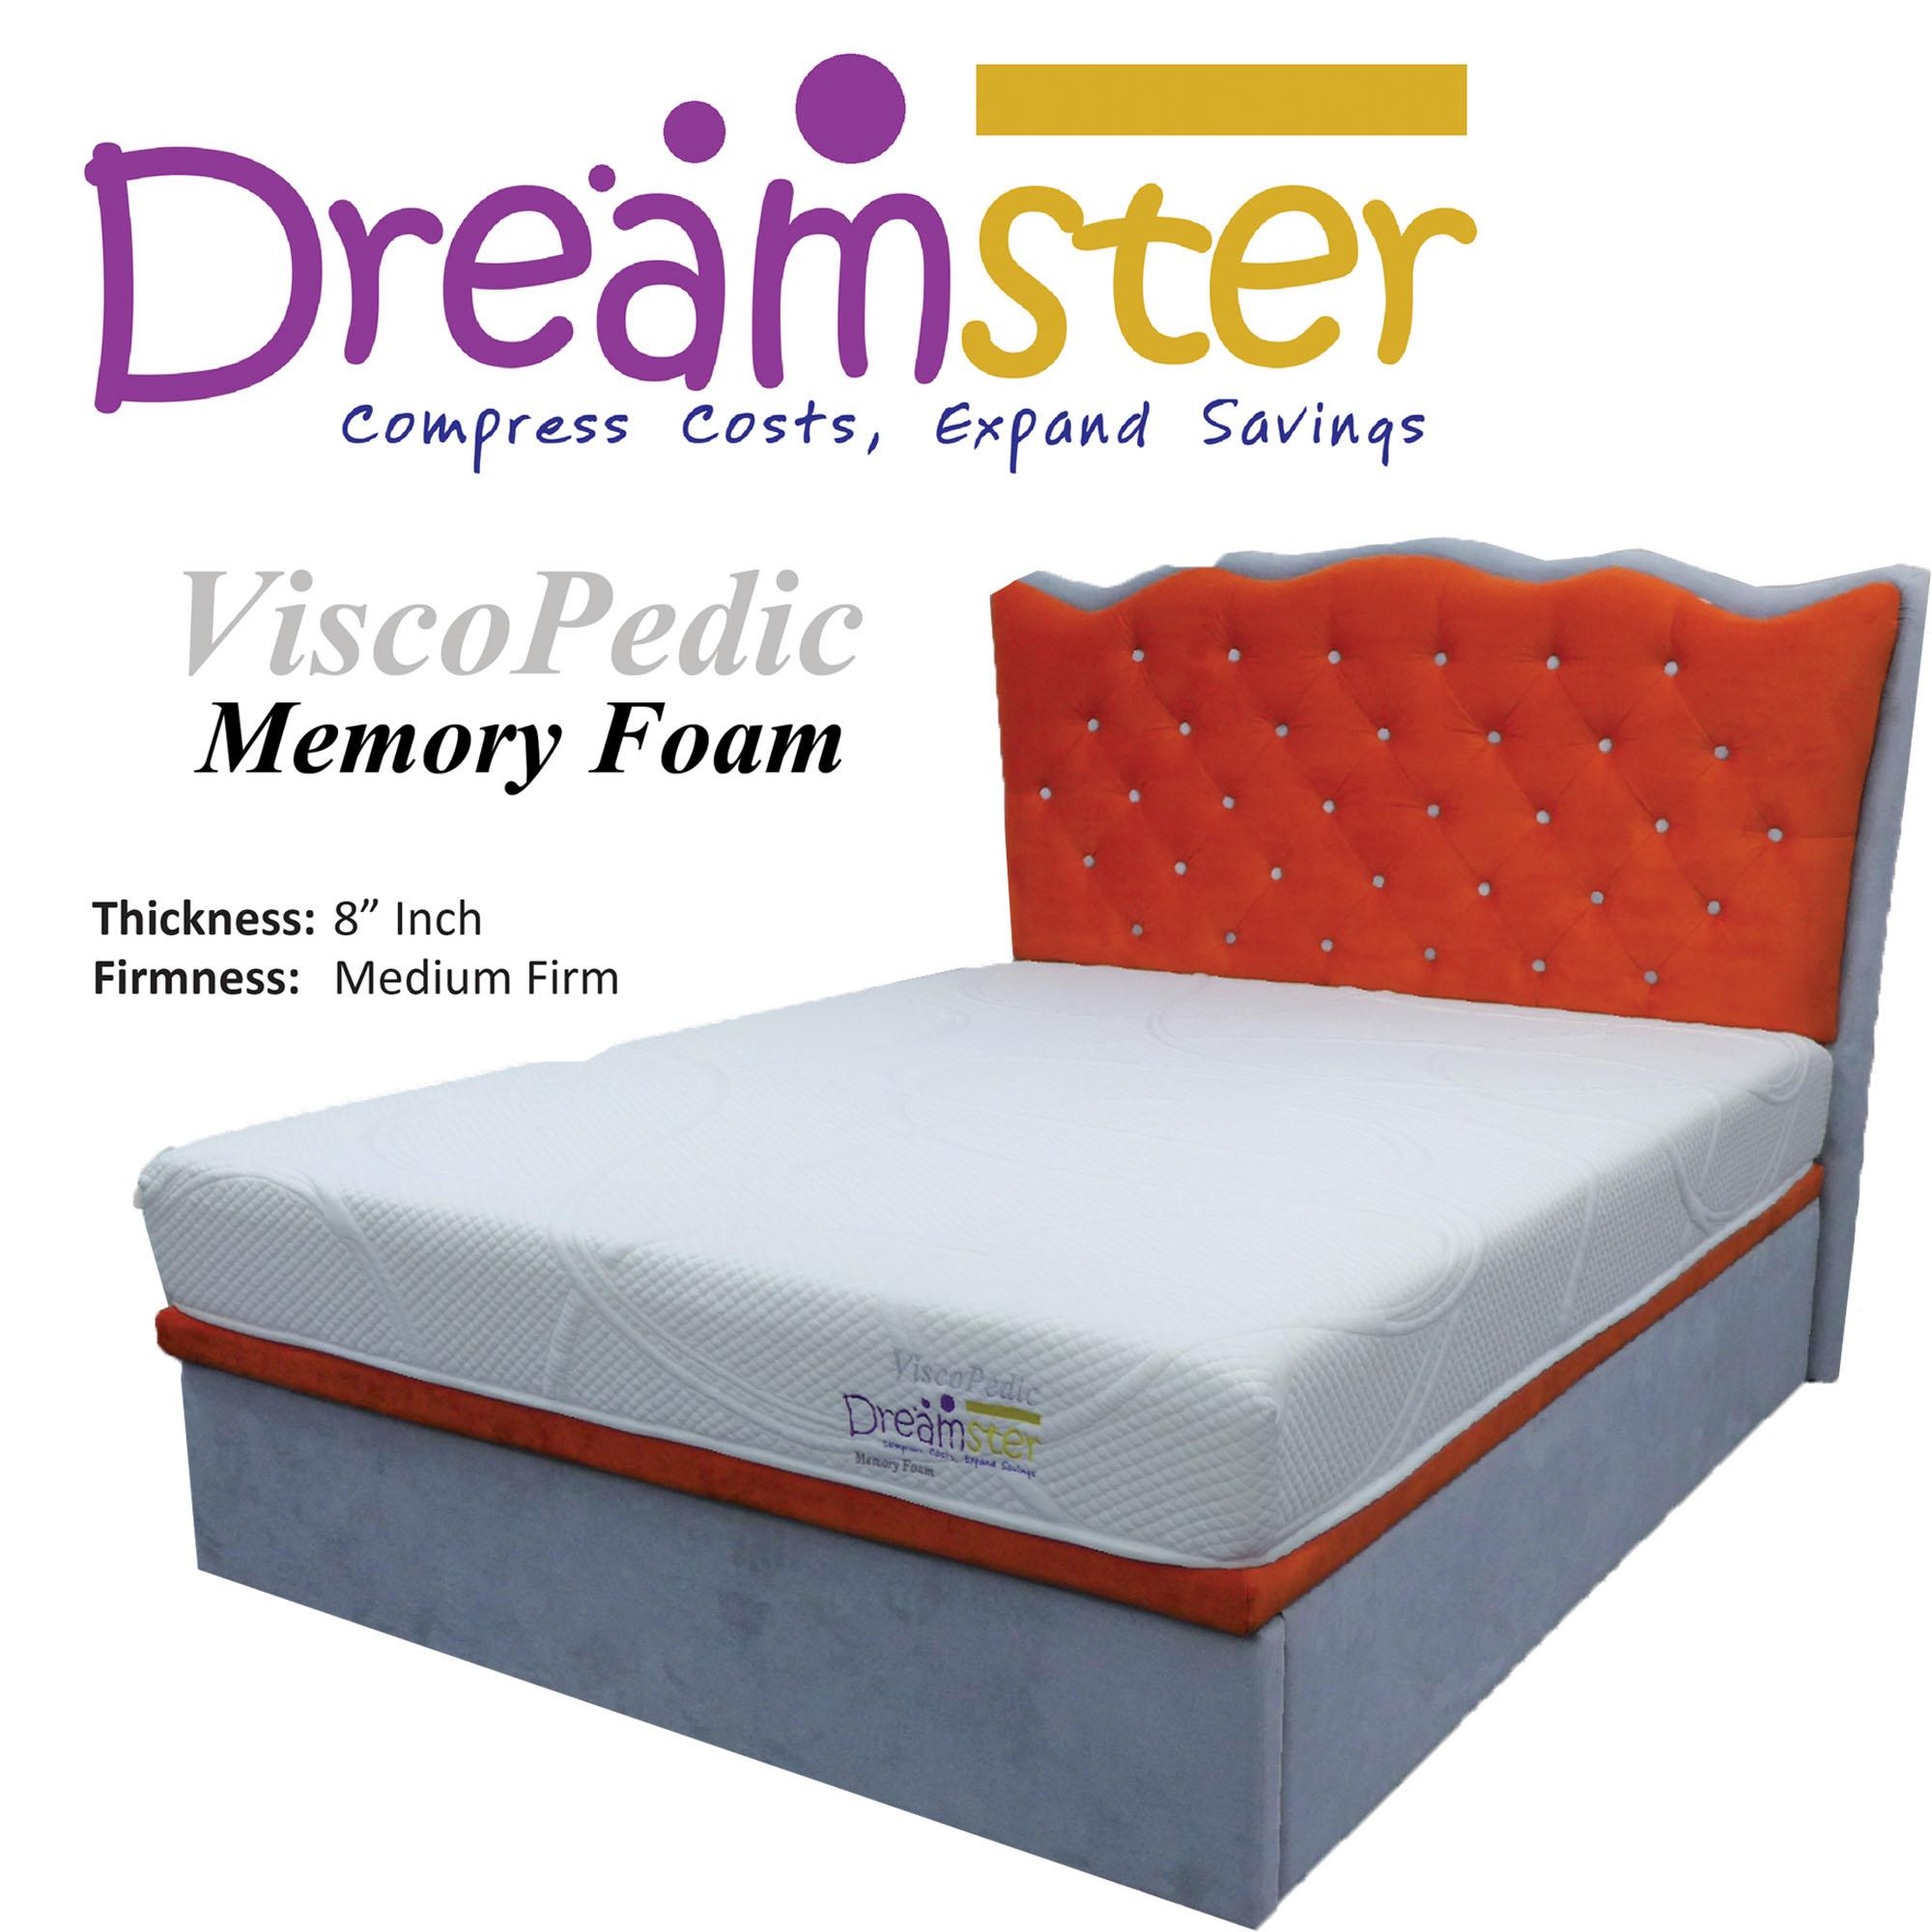 NNDESIGN Dreamster ViscoPedic 8inch Memory Foam Mattress - (Queen Size)